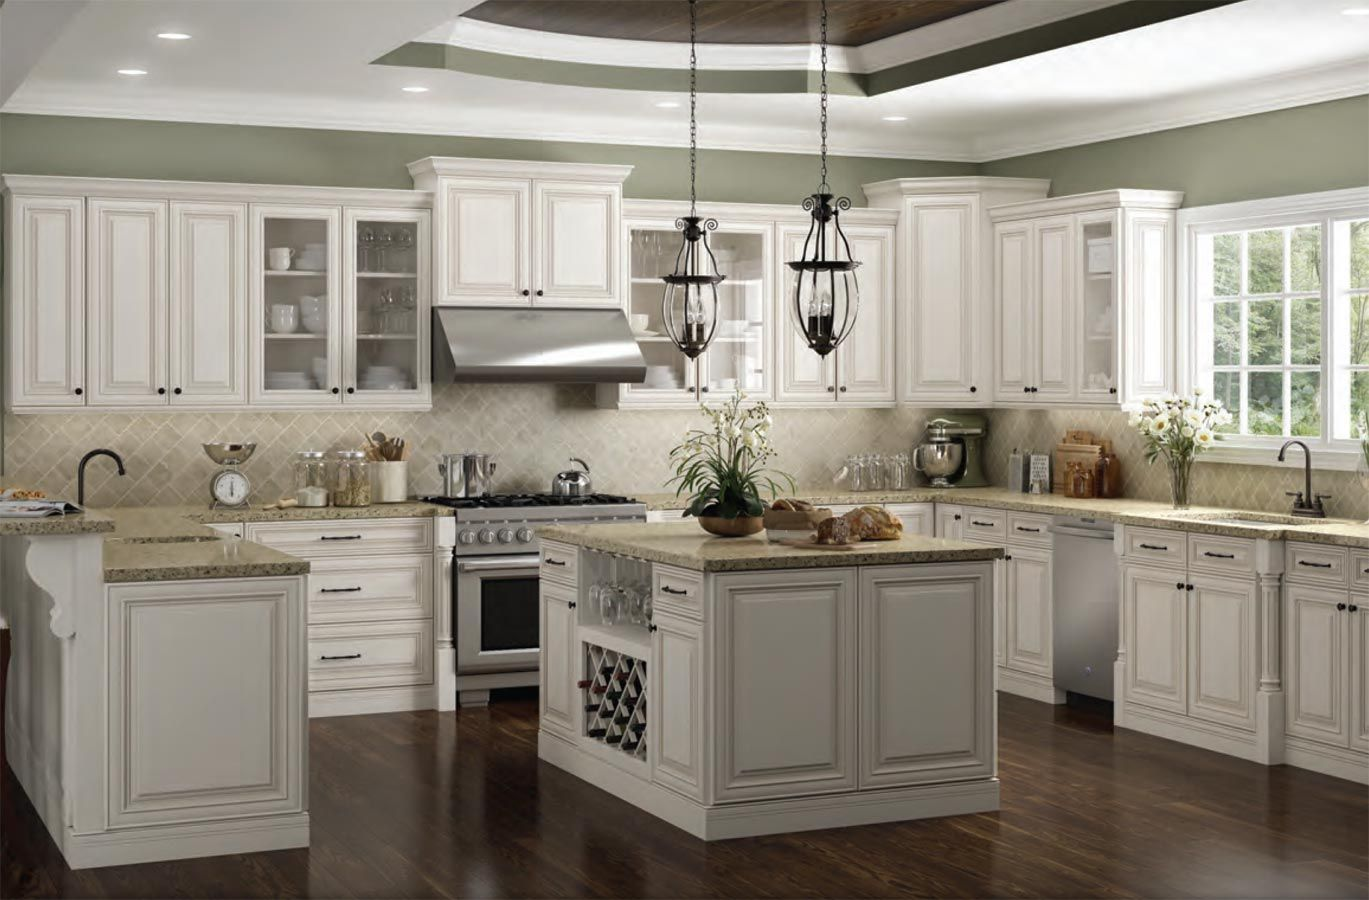 photos ideas home with cabinets antique interior nice white cabinet decor kitchen on